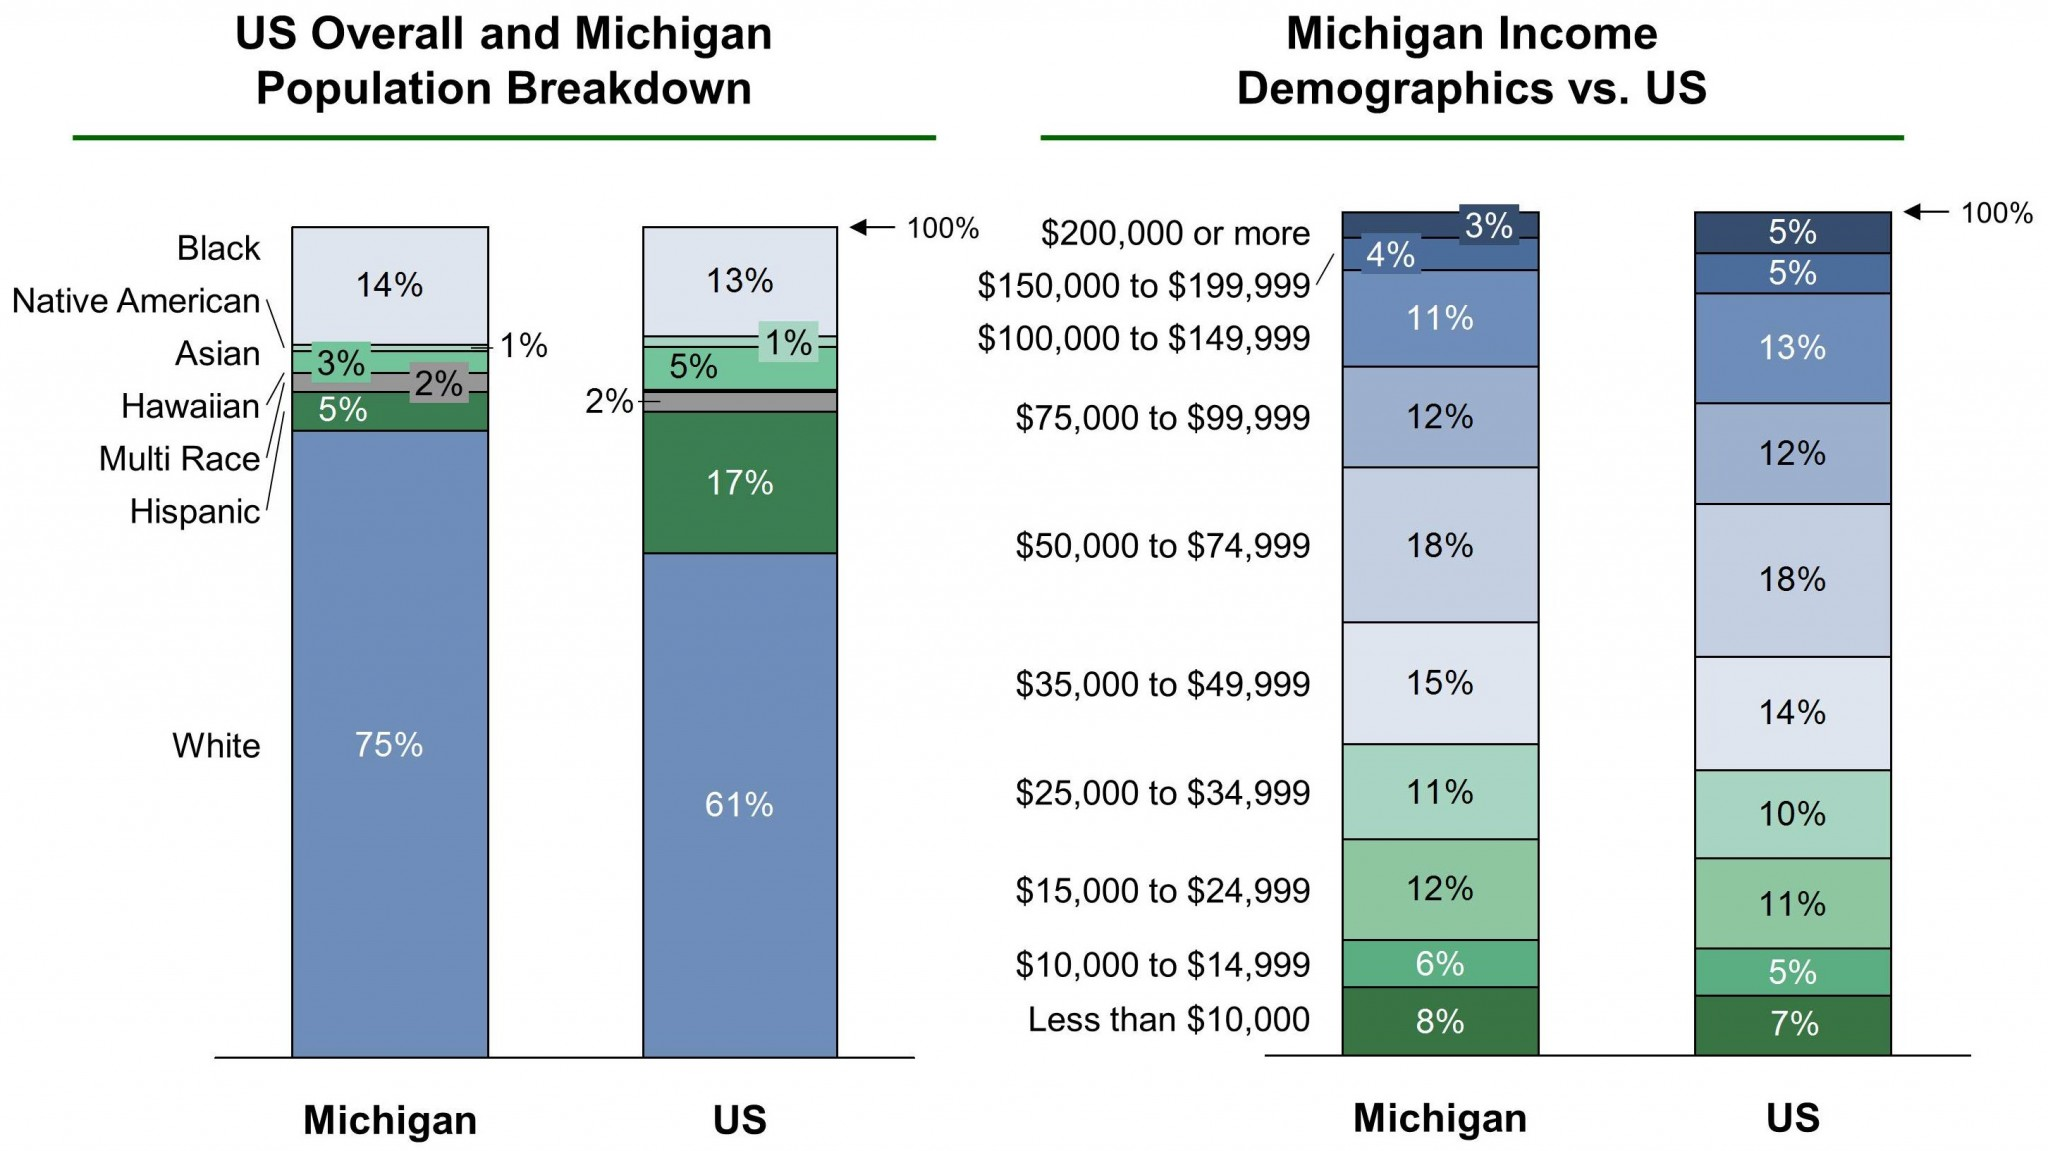 Michigan EB-5 Regional Center Demographics VF